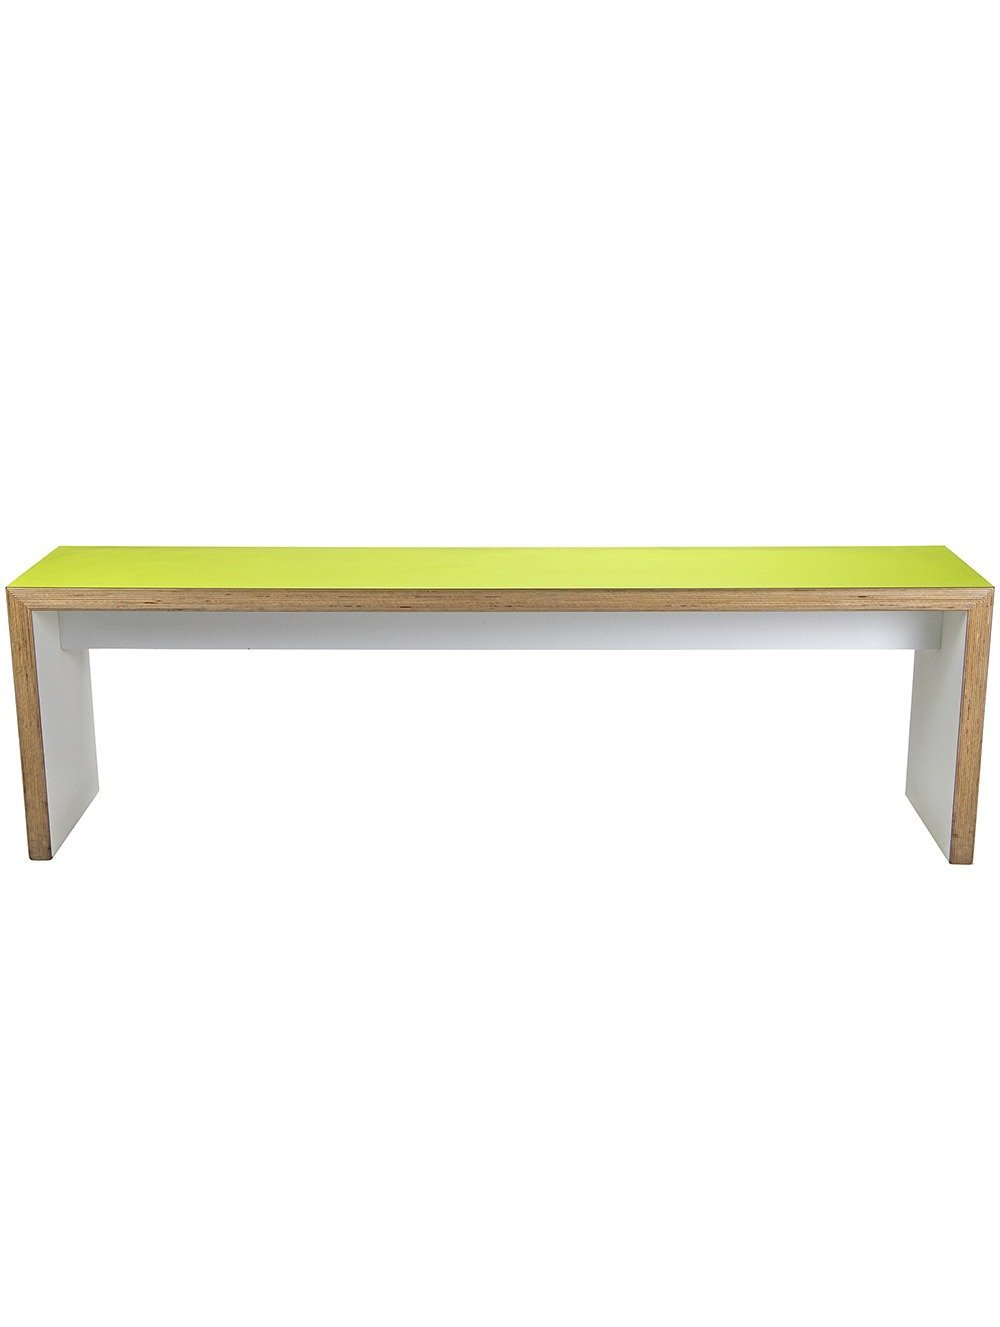 Green slabend bench from the front